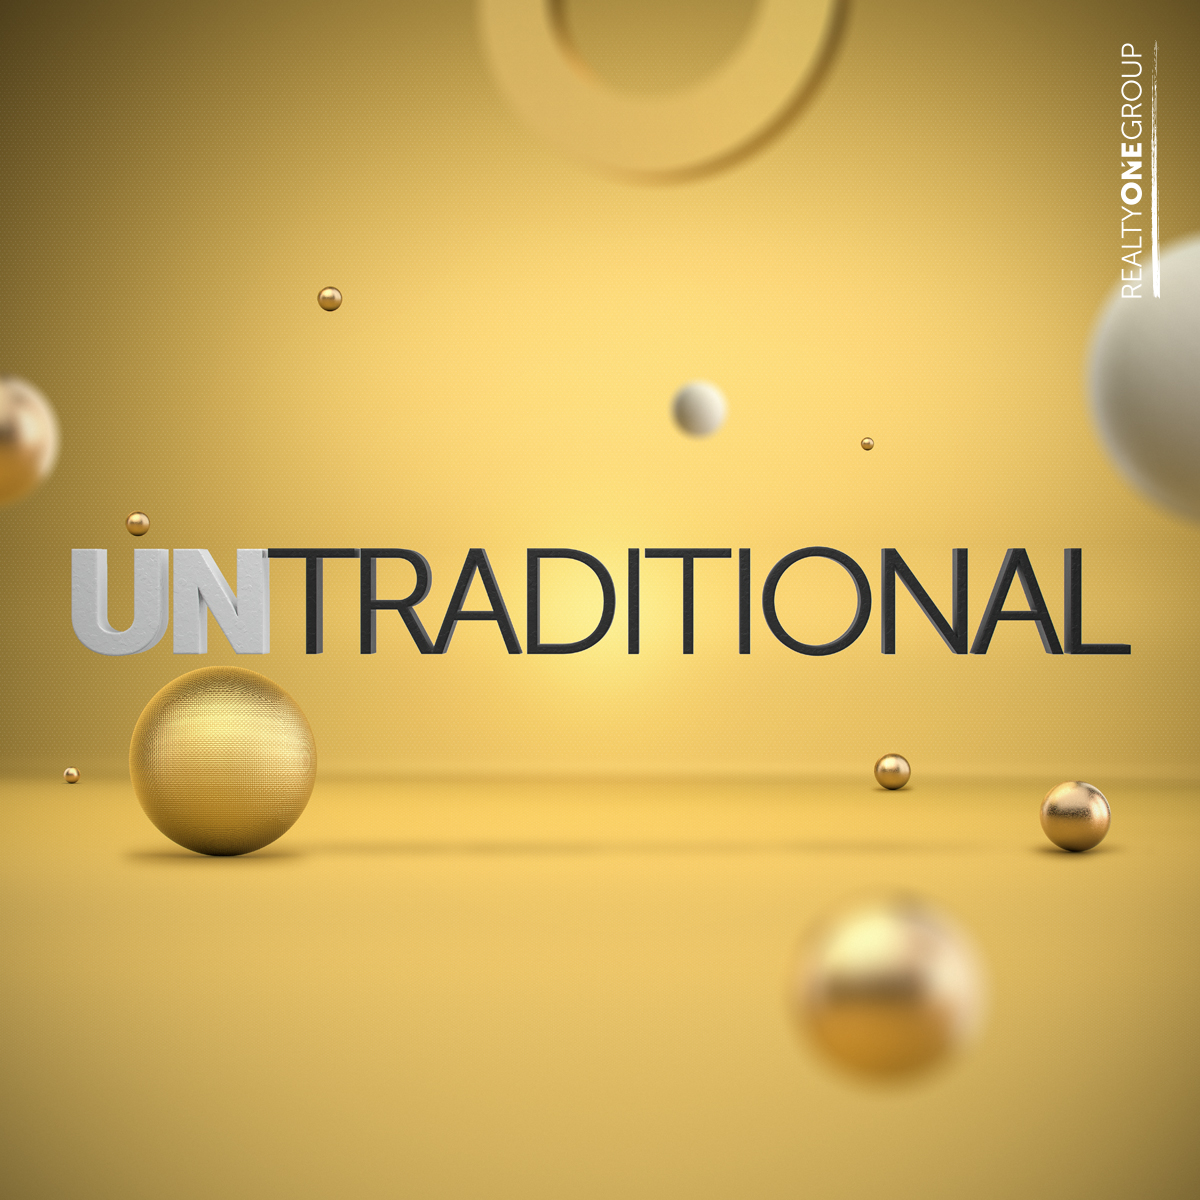 Untraditional1200x1200